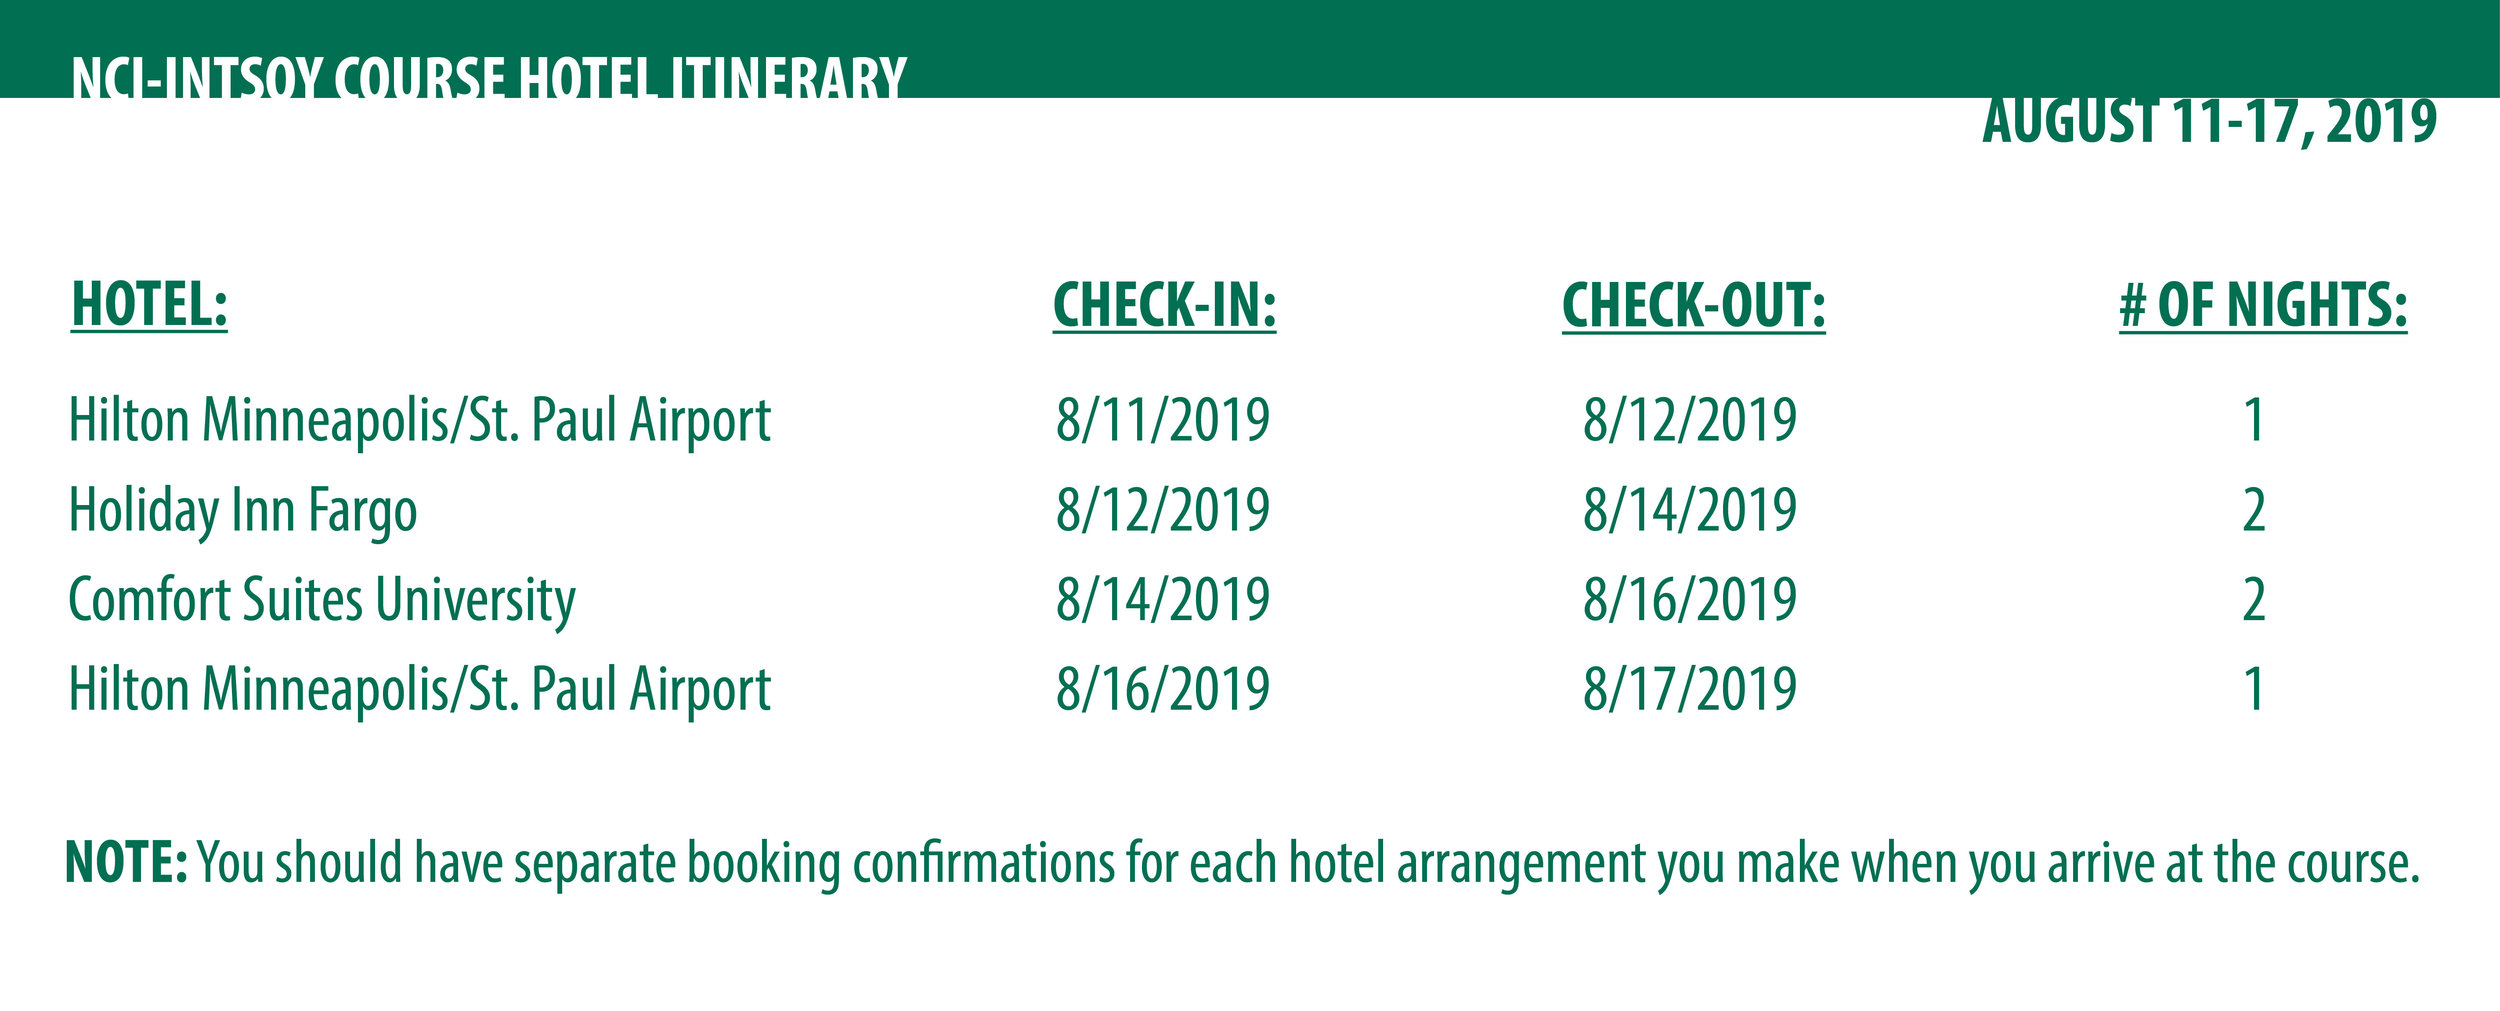 NCI-INTSOY Course Hotel Itinerary Template.jpg